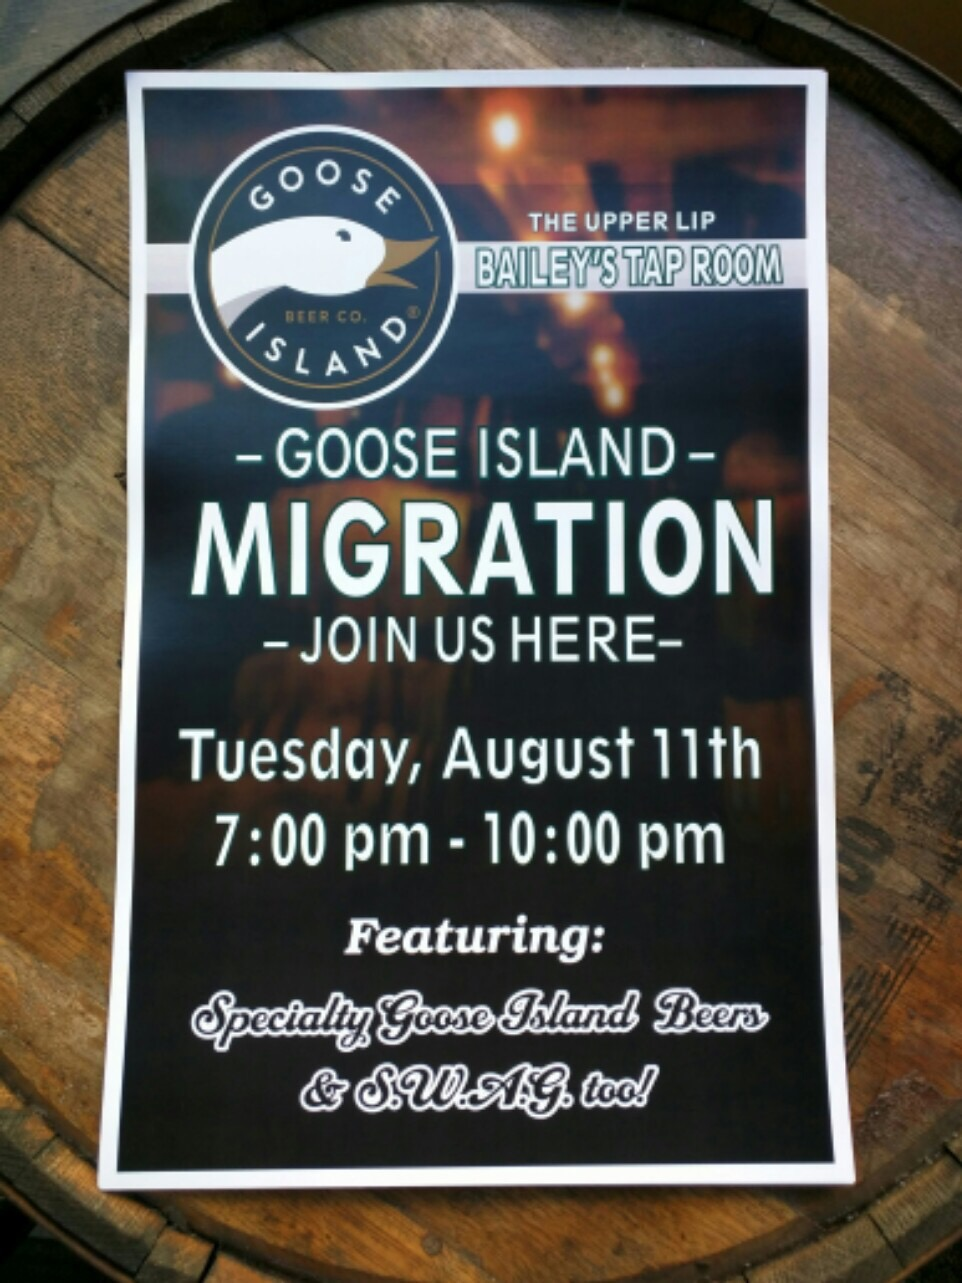 Goose Island Migration Week at Bailey's Taproom and The Upper Lip